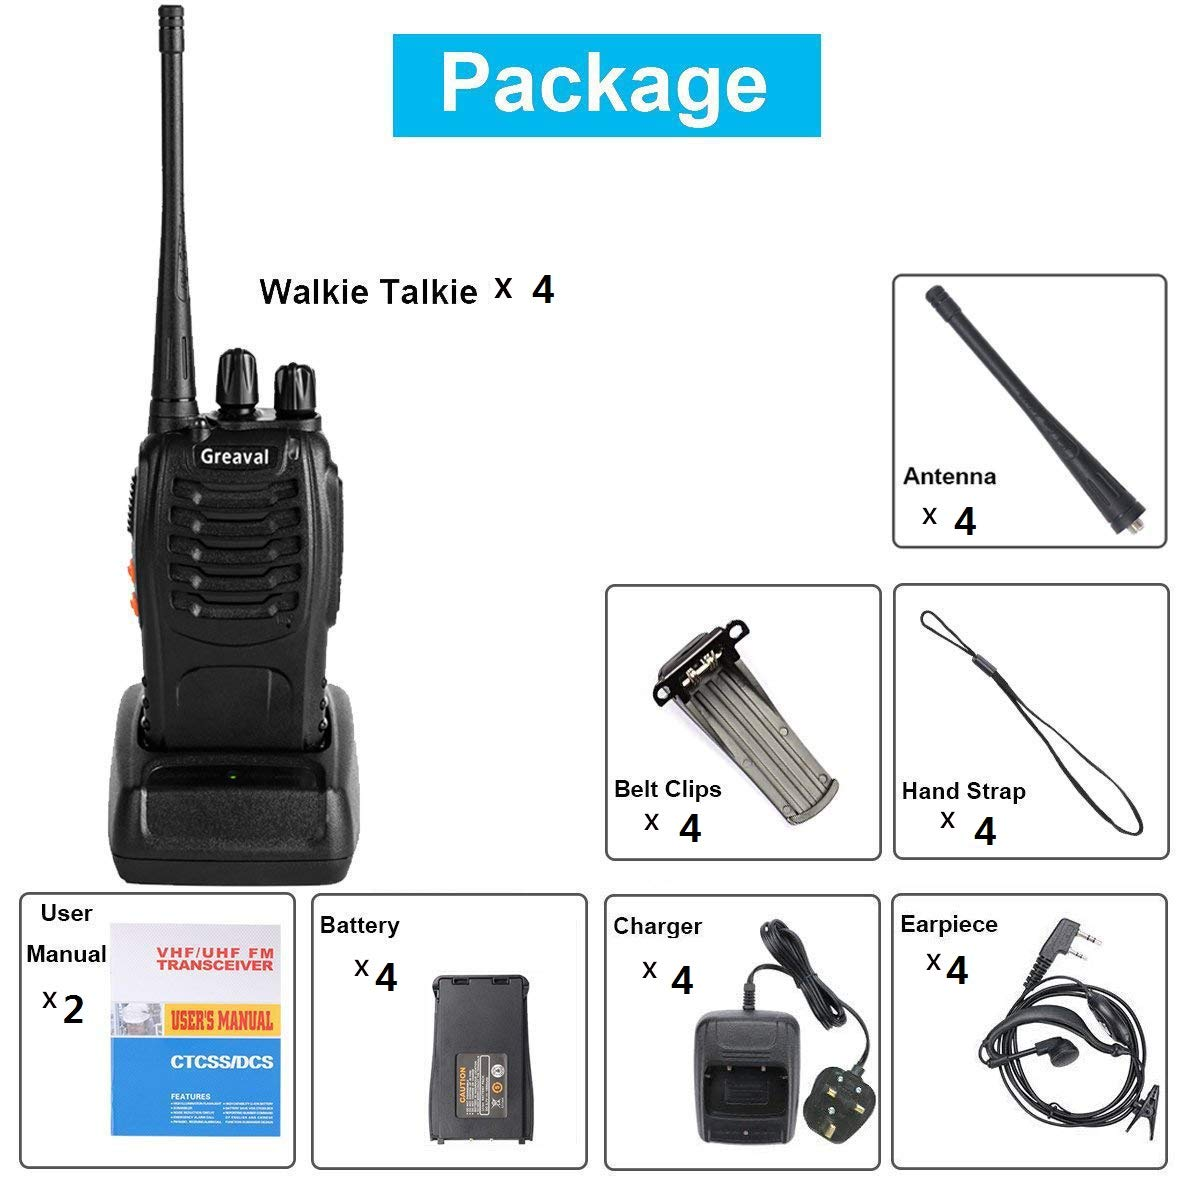 Ltd. Qicheng Technology Co Pack of 2 BaoFeng Walkie Talkies Long Range Two Way Radio UHF 400-470MHz 16-Channel 2 Way Radio with Earpiece